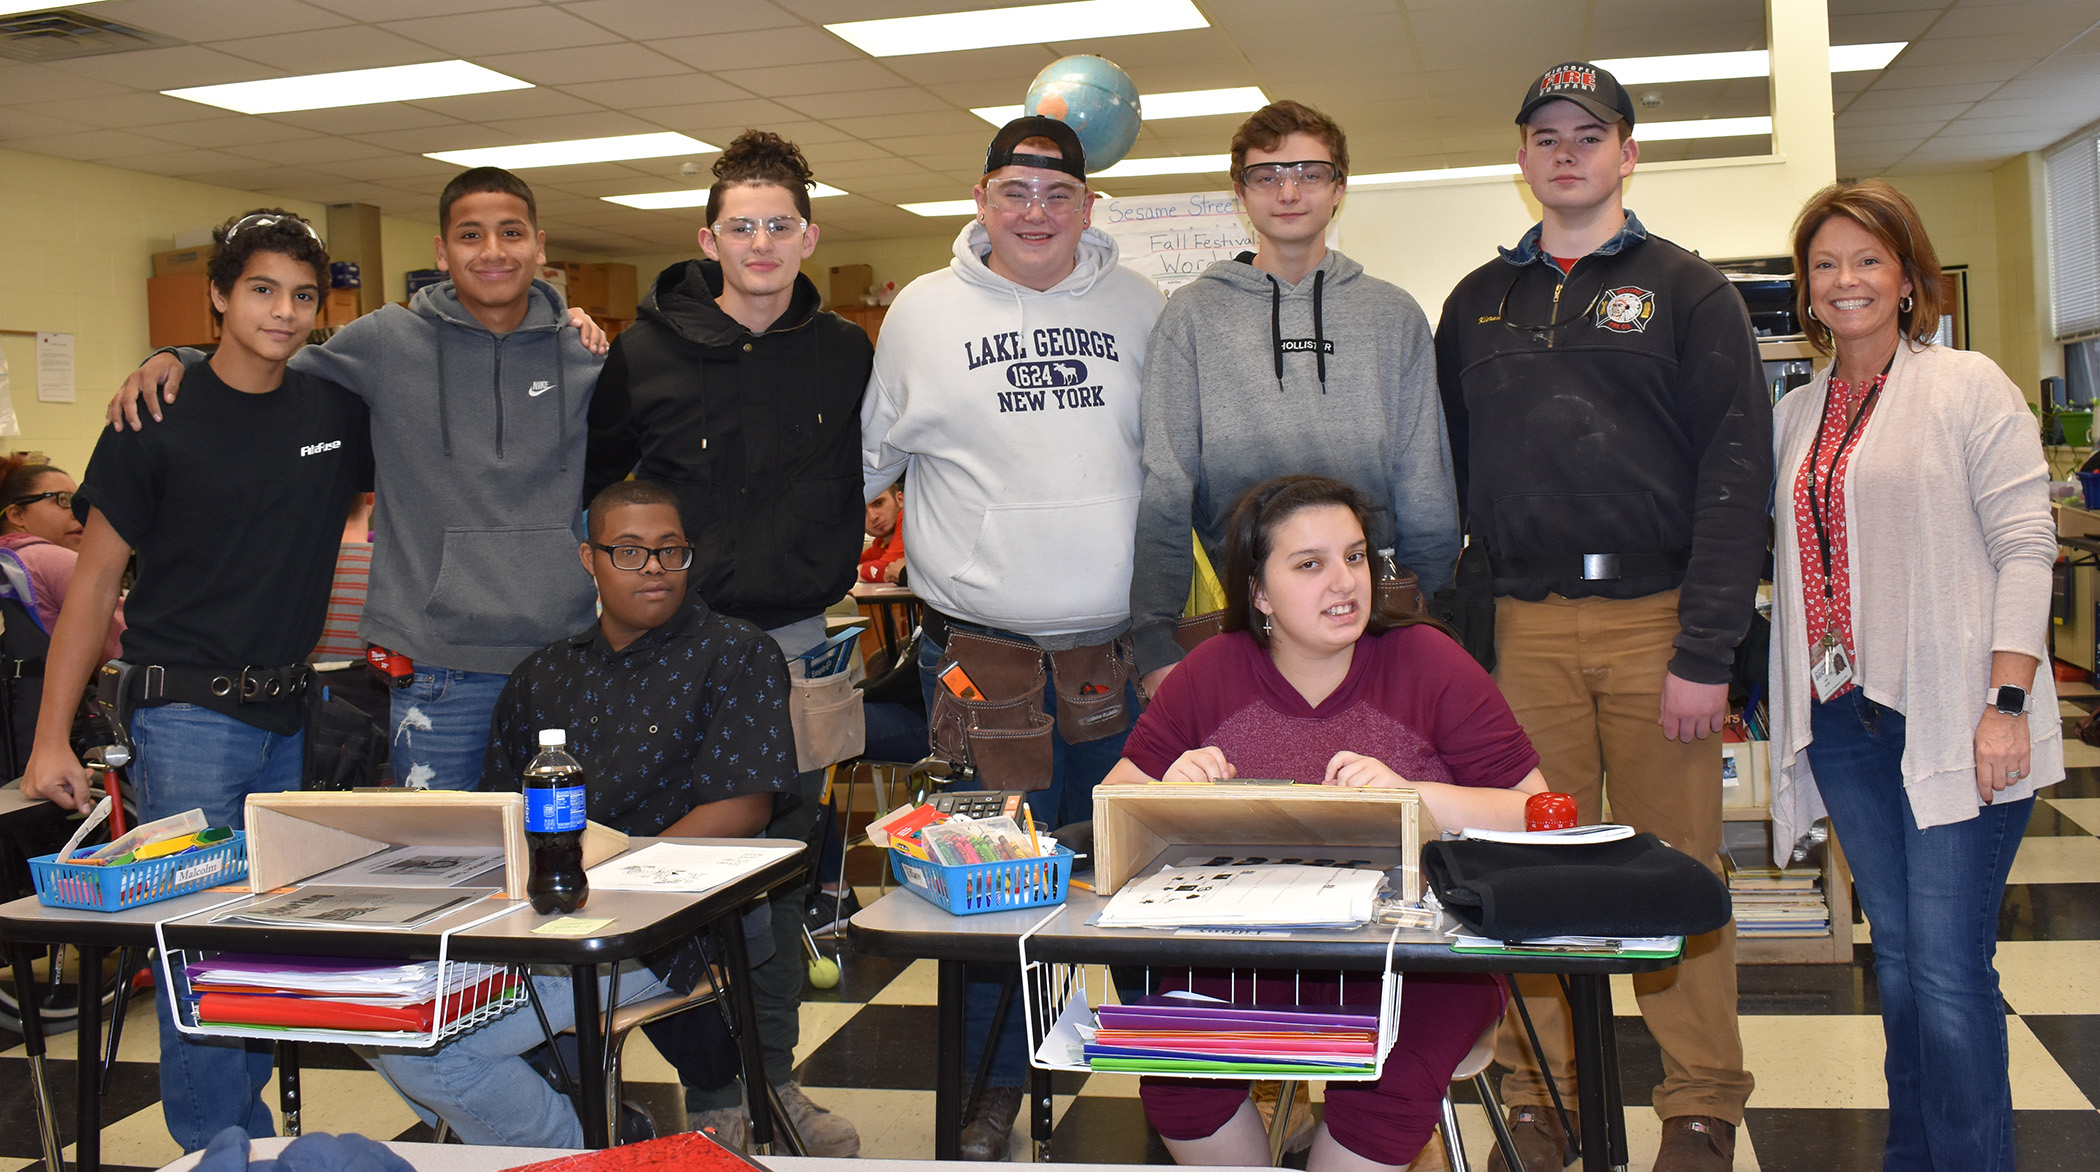 Pictured are Construction Trade students from the Dutchess BOCES Career and Technical Institute and students who use slant boards to improve writing along with occupational therapist Lisa Serlin